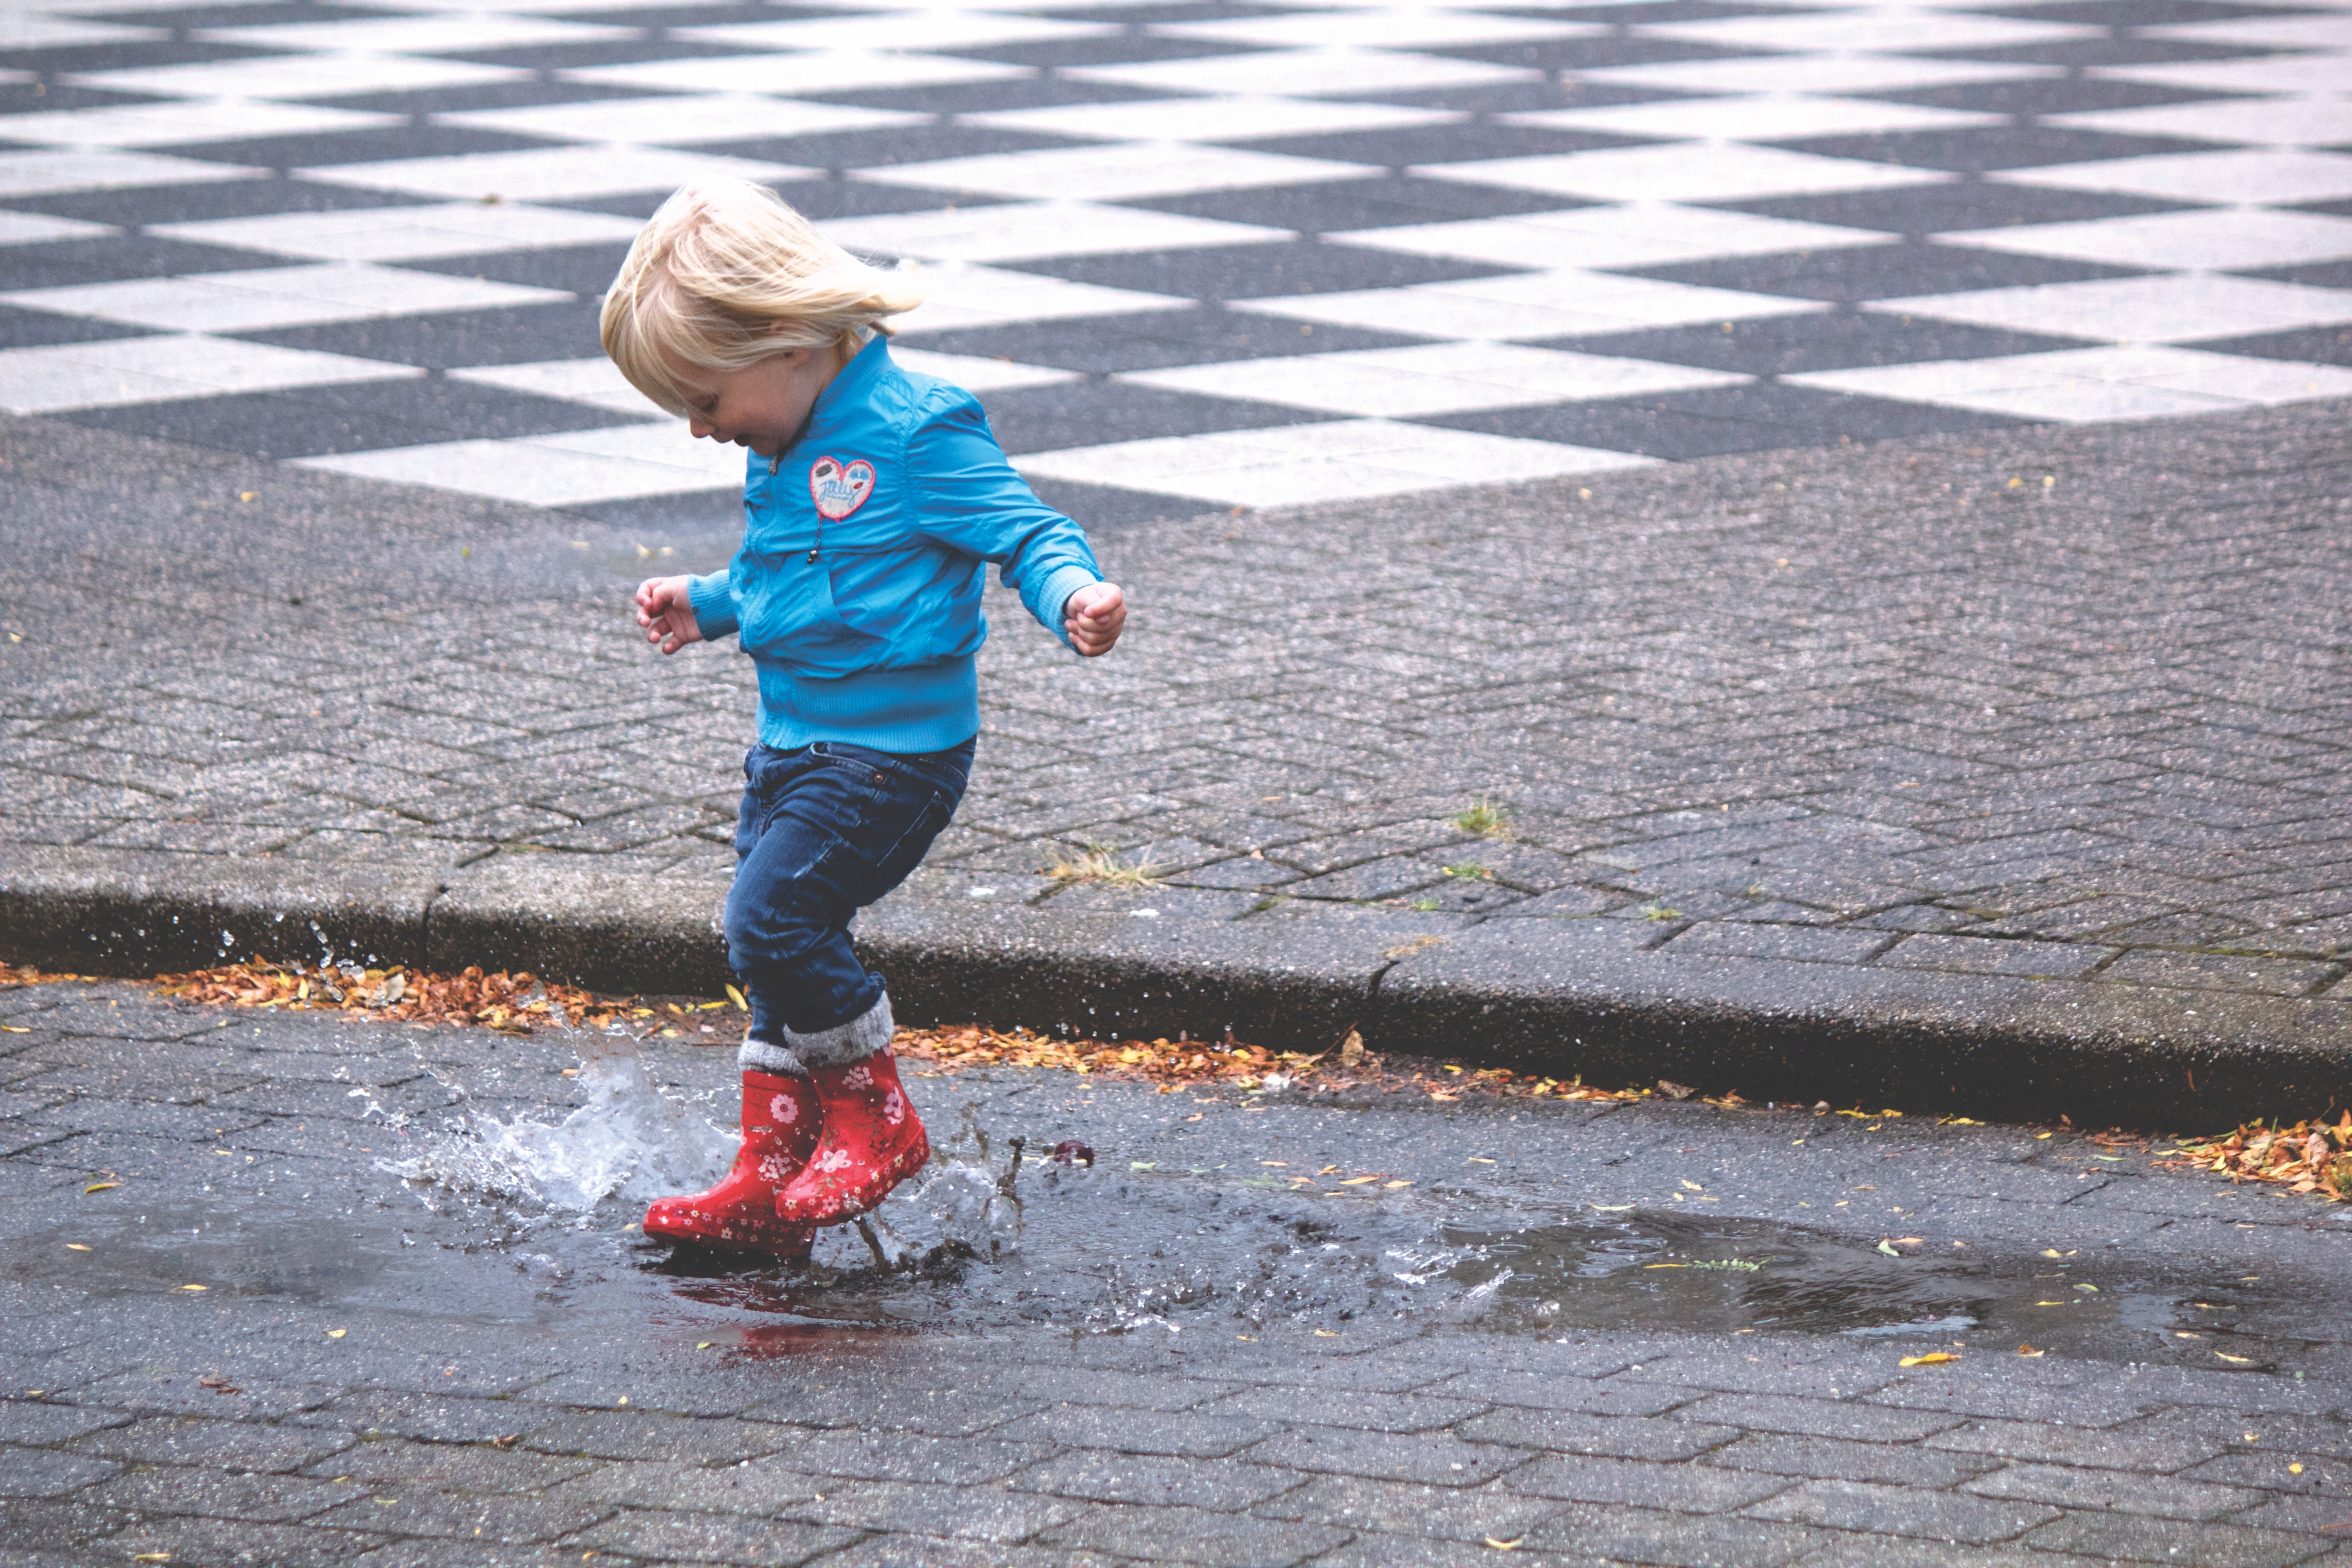 Boy in Blue Jacket Hopping on Water Puddle, Child, Fun, Jump, Jumping, HQ Photo